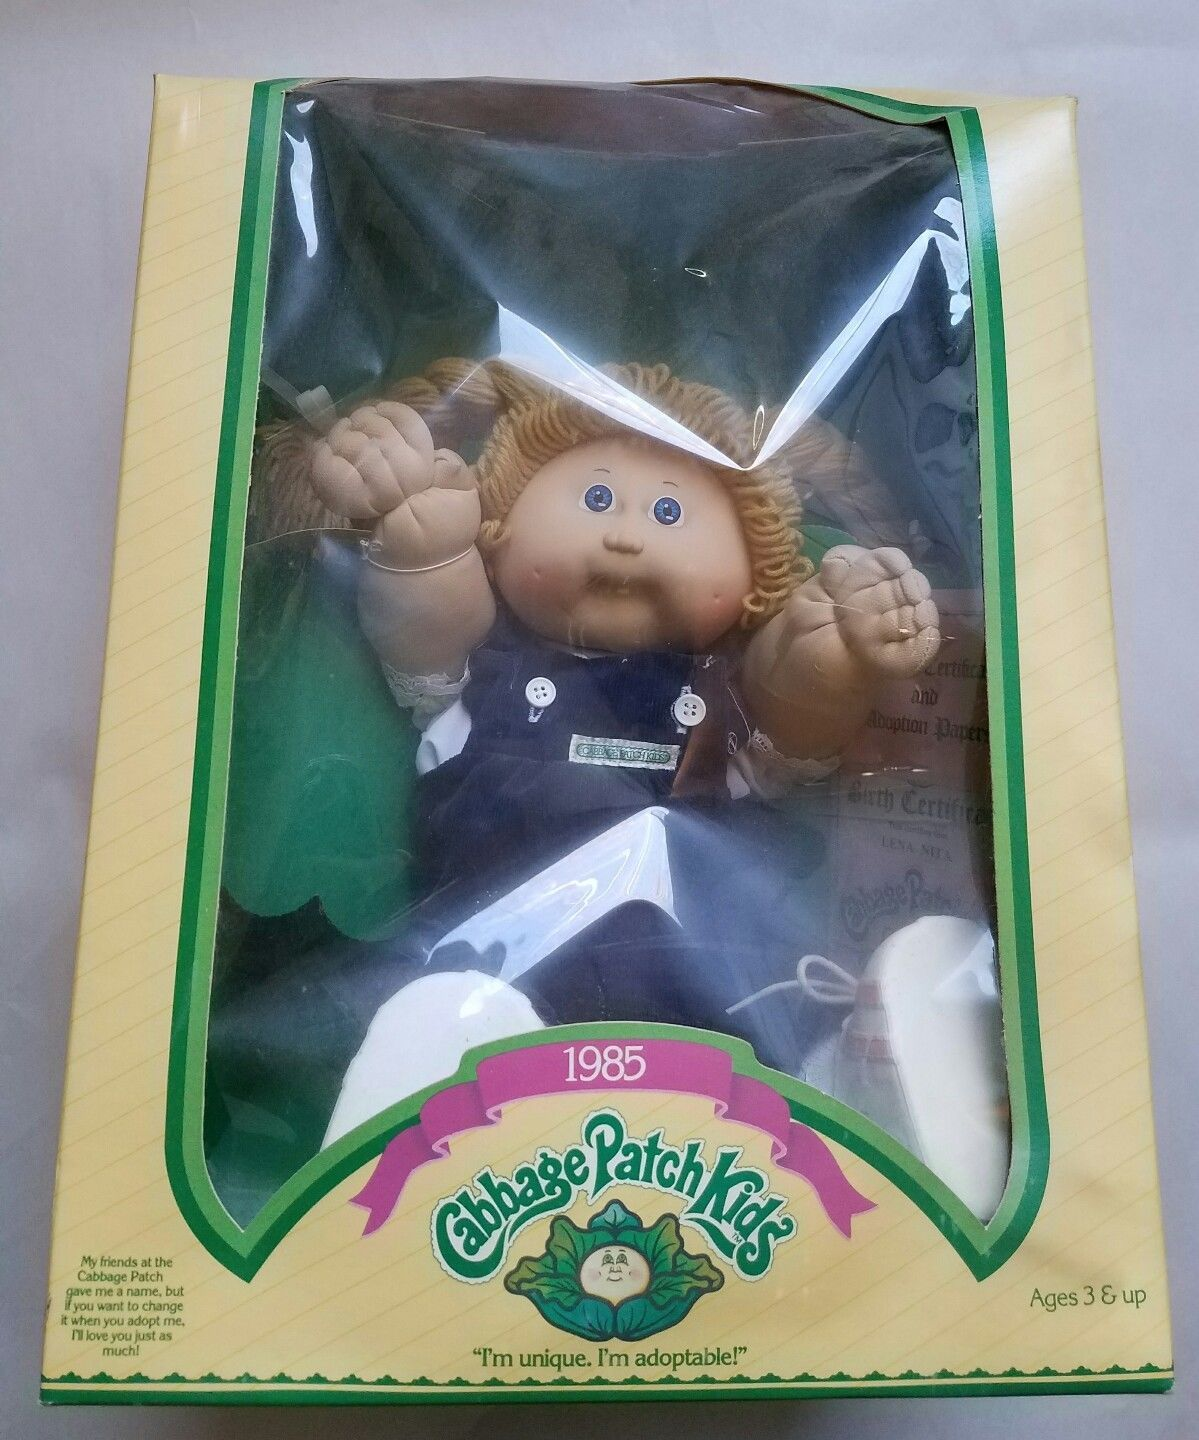 1985 Cabbage Patch Kids Lesley Herbie Football Player Brown Eyes Box Certif Ebay Cabbage Patch Kids Dolls Cabbage Patch Kids Cabbage Patch Dolls